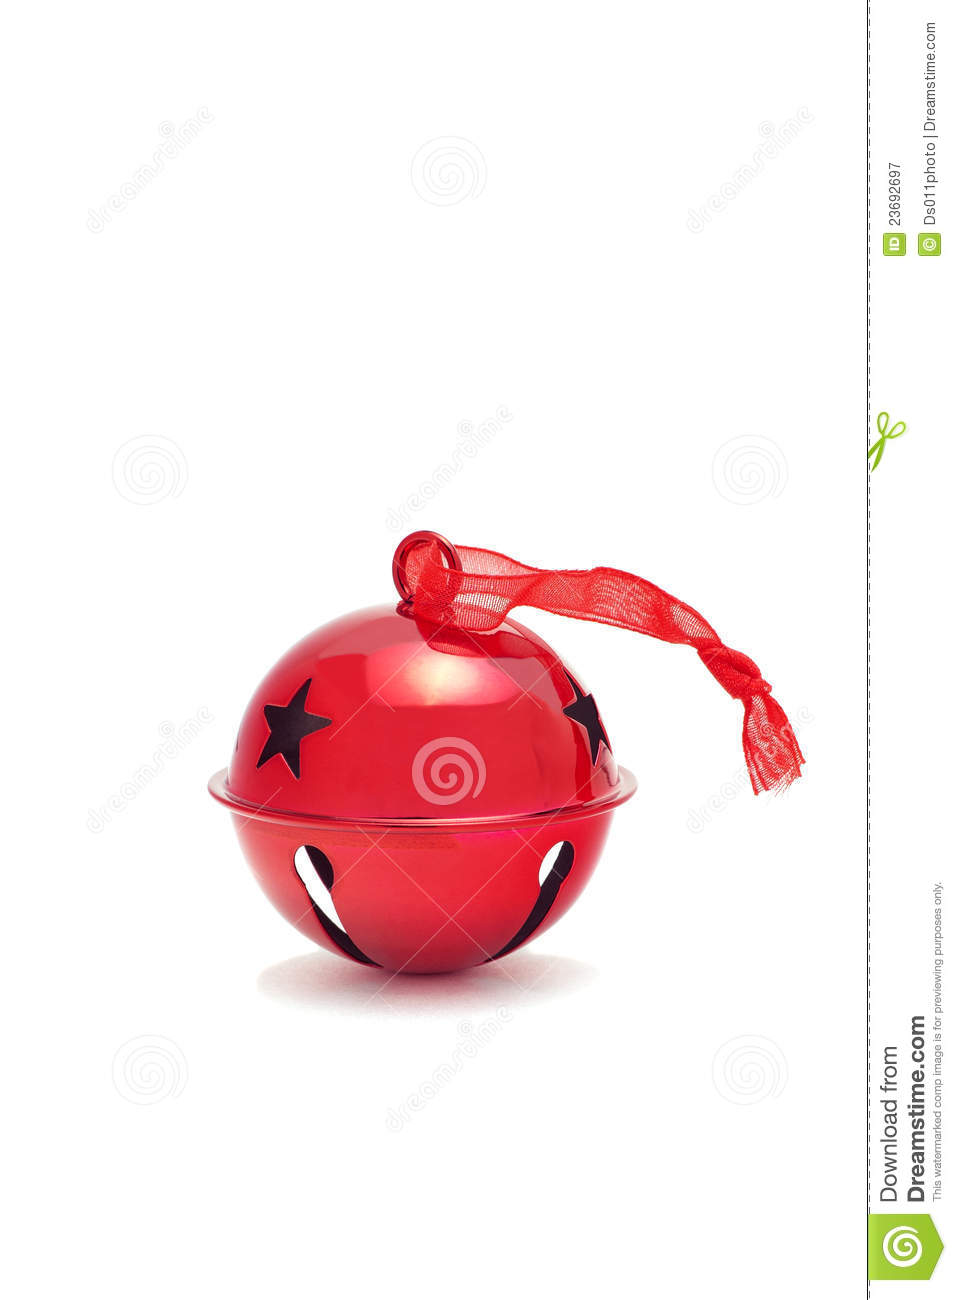 Red jingle bell stock image. Image of winter, star, bells ...